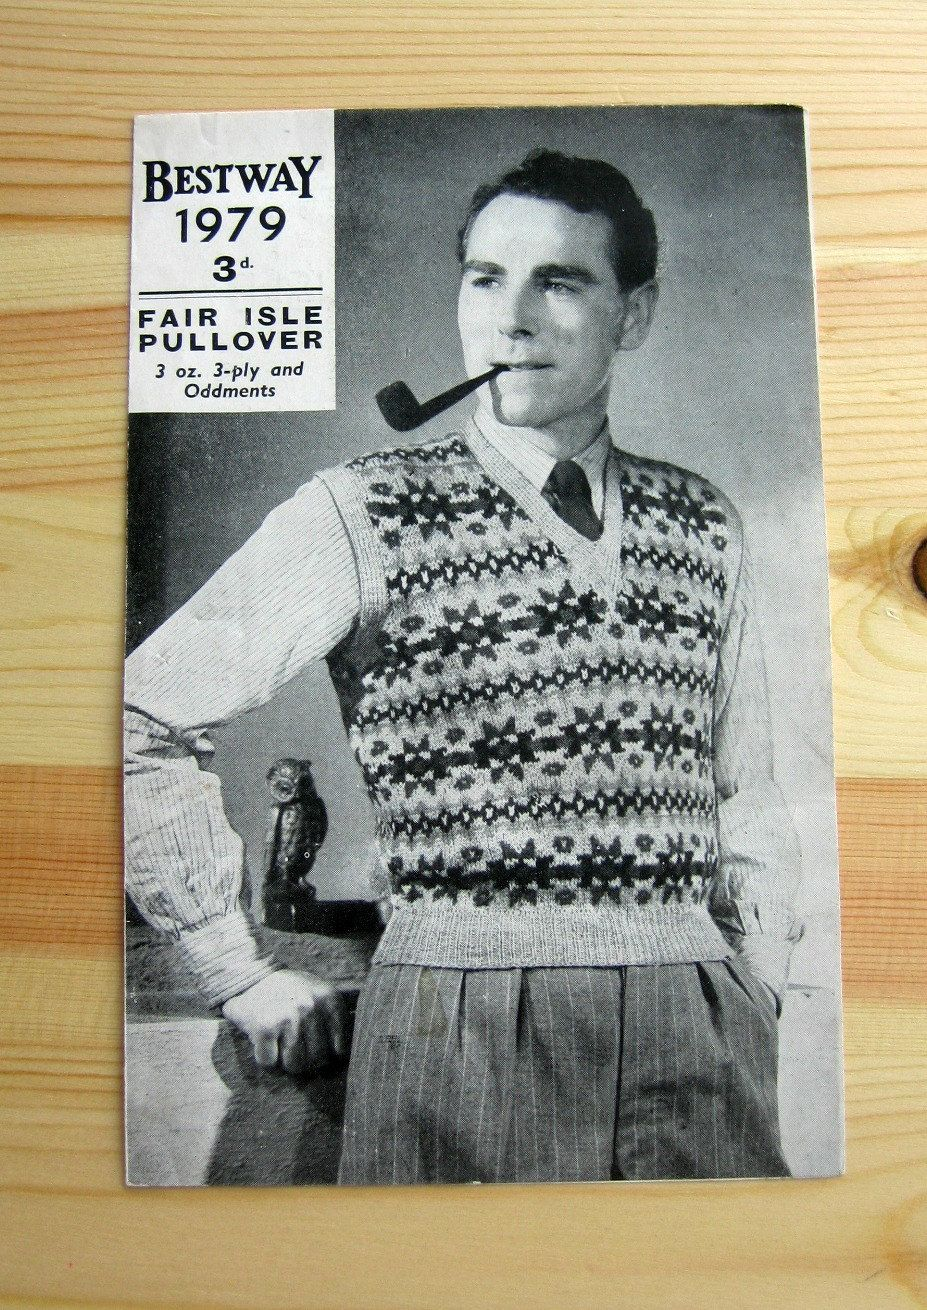 1940s Knitting Pattern Mens Fair Isle Sleeveless Pullover Bestway Wartime Original Vintage Pattern. £6.00, via Etsy.